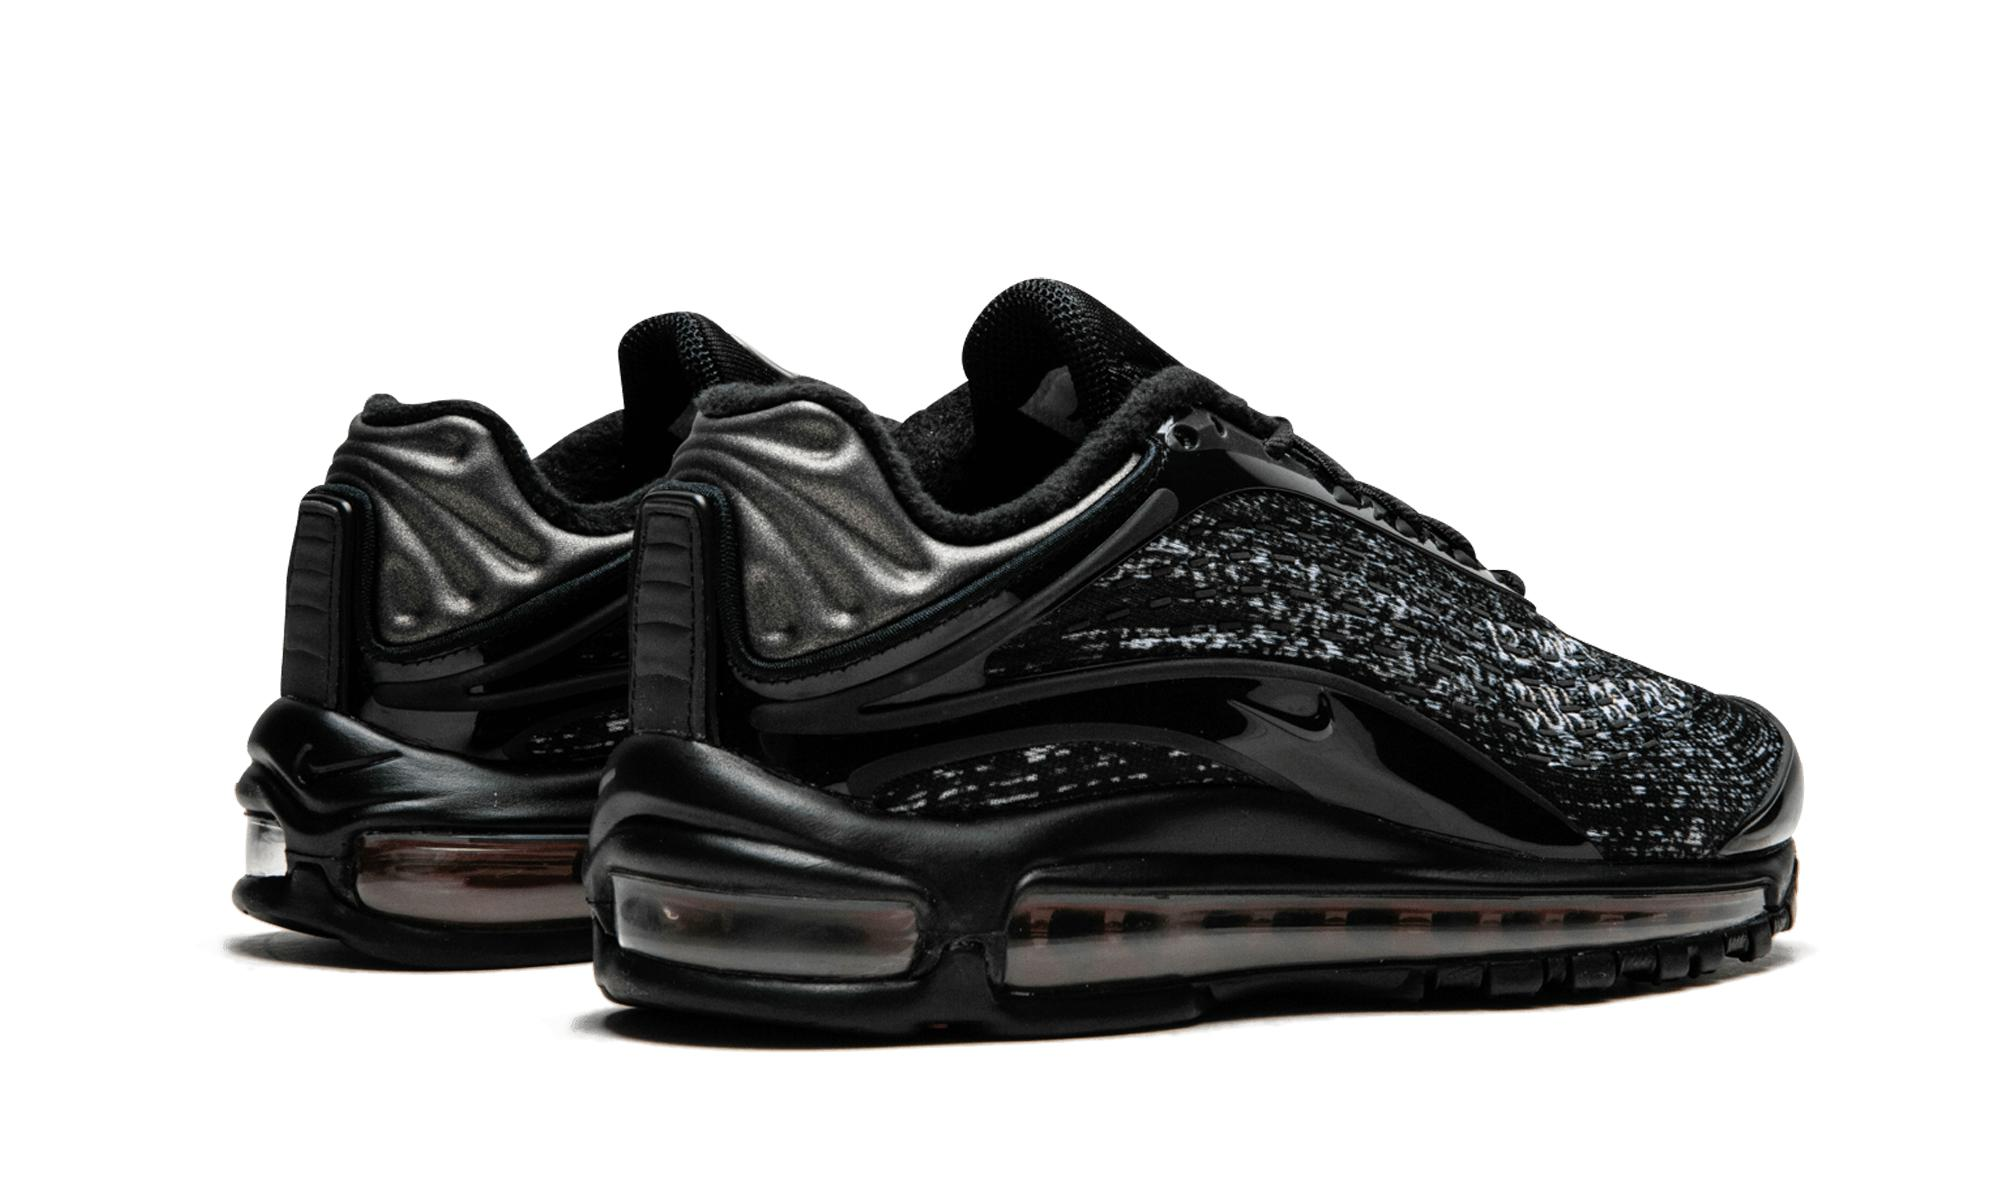 9e069122deed9c Lyst - Nike Air Max Deluxe Sk in Black for Men - Save 32%